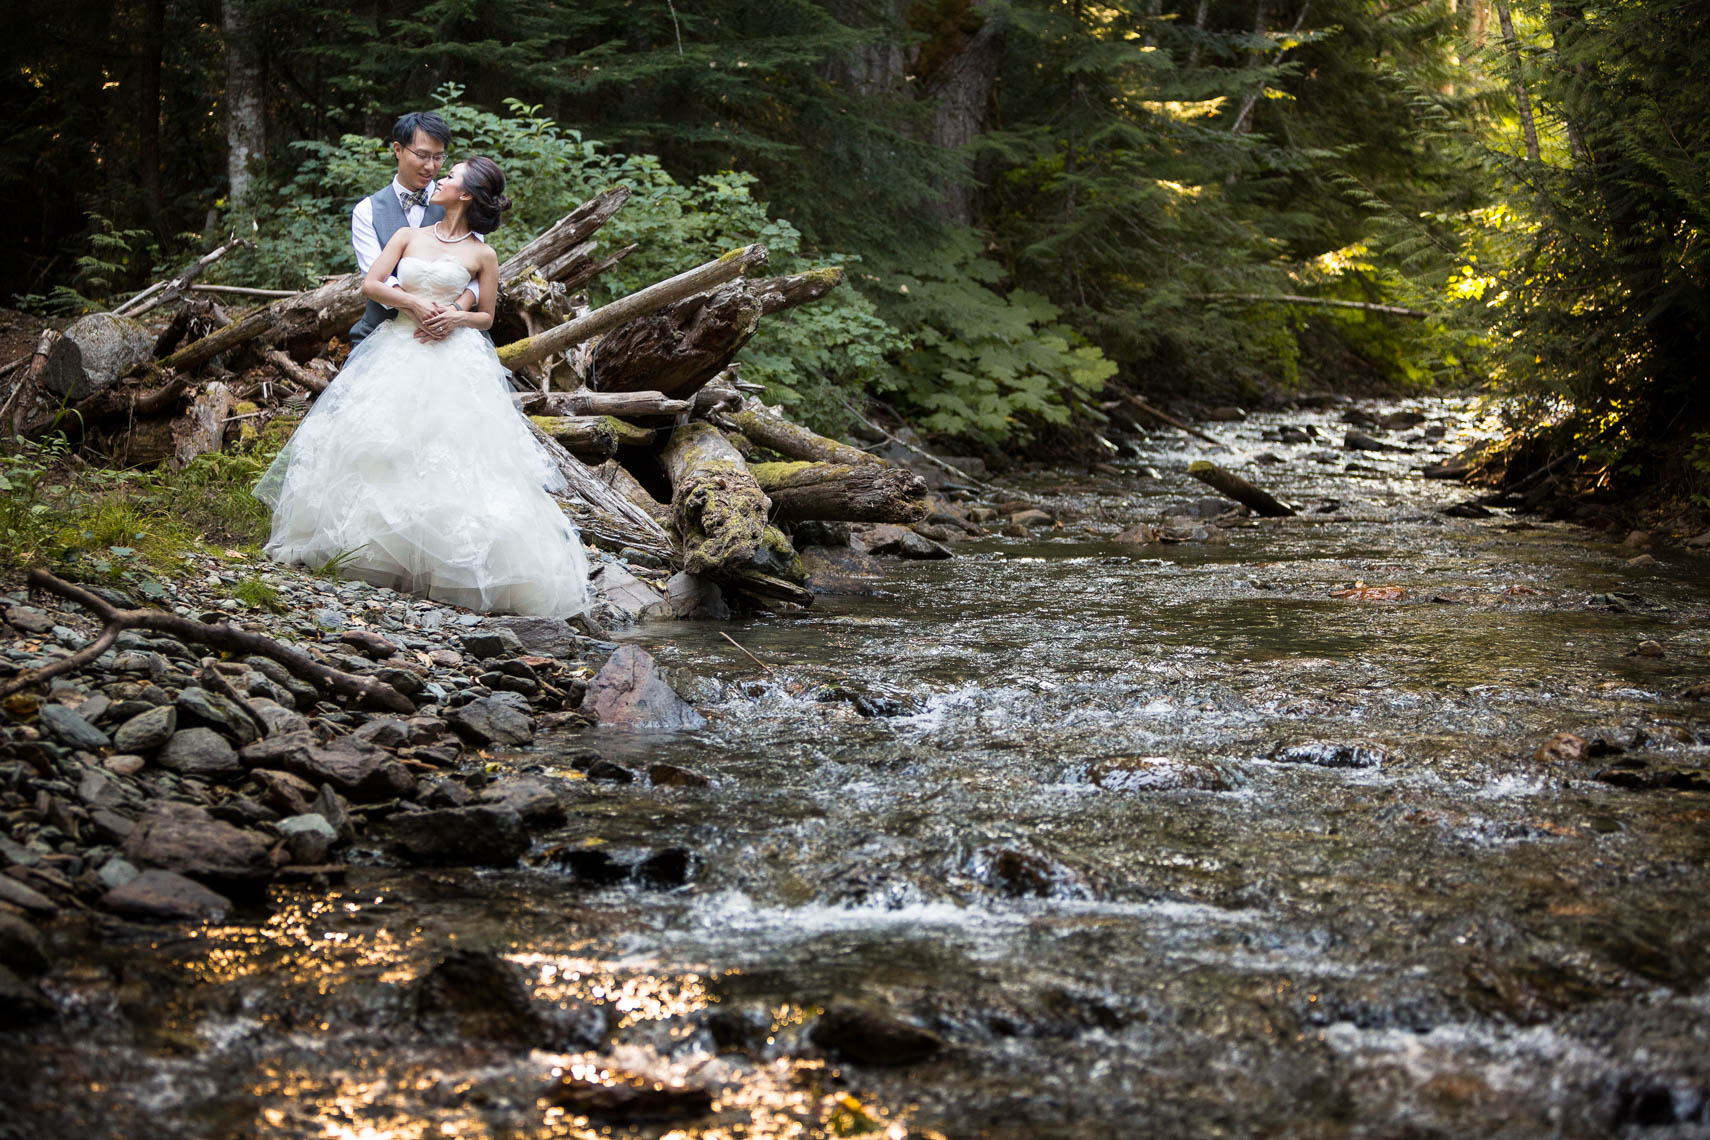 Bride and groom embrace near a woodland stream in Whistler, Canada